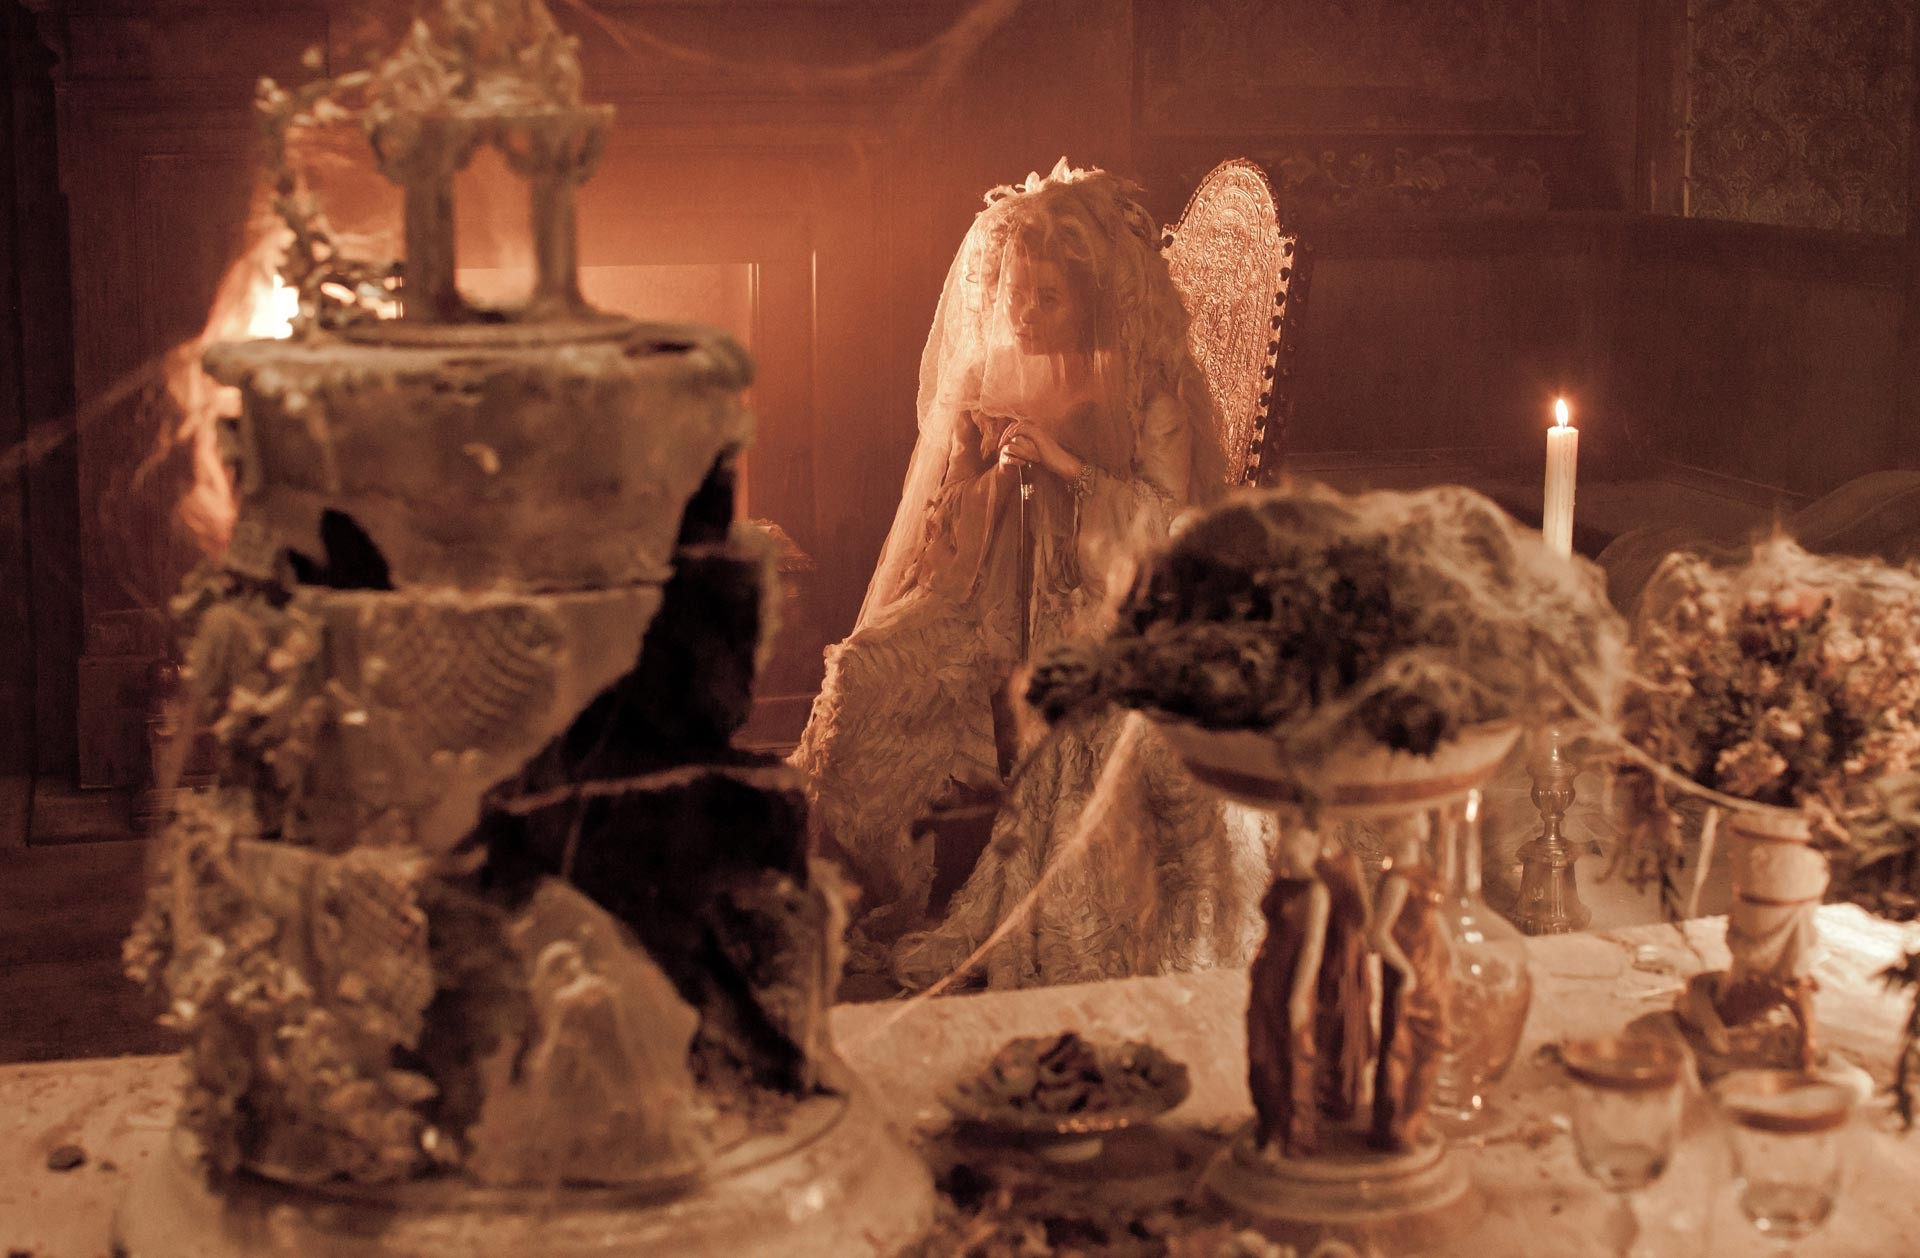 table and wedding cake aceshowbiz com images still  table and wedding cake aceshowbiz com images still great expecations omg03 jpg halloween miss havisham